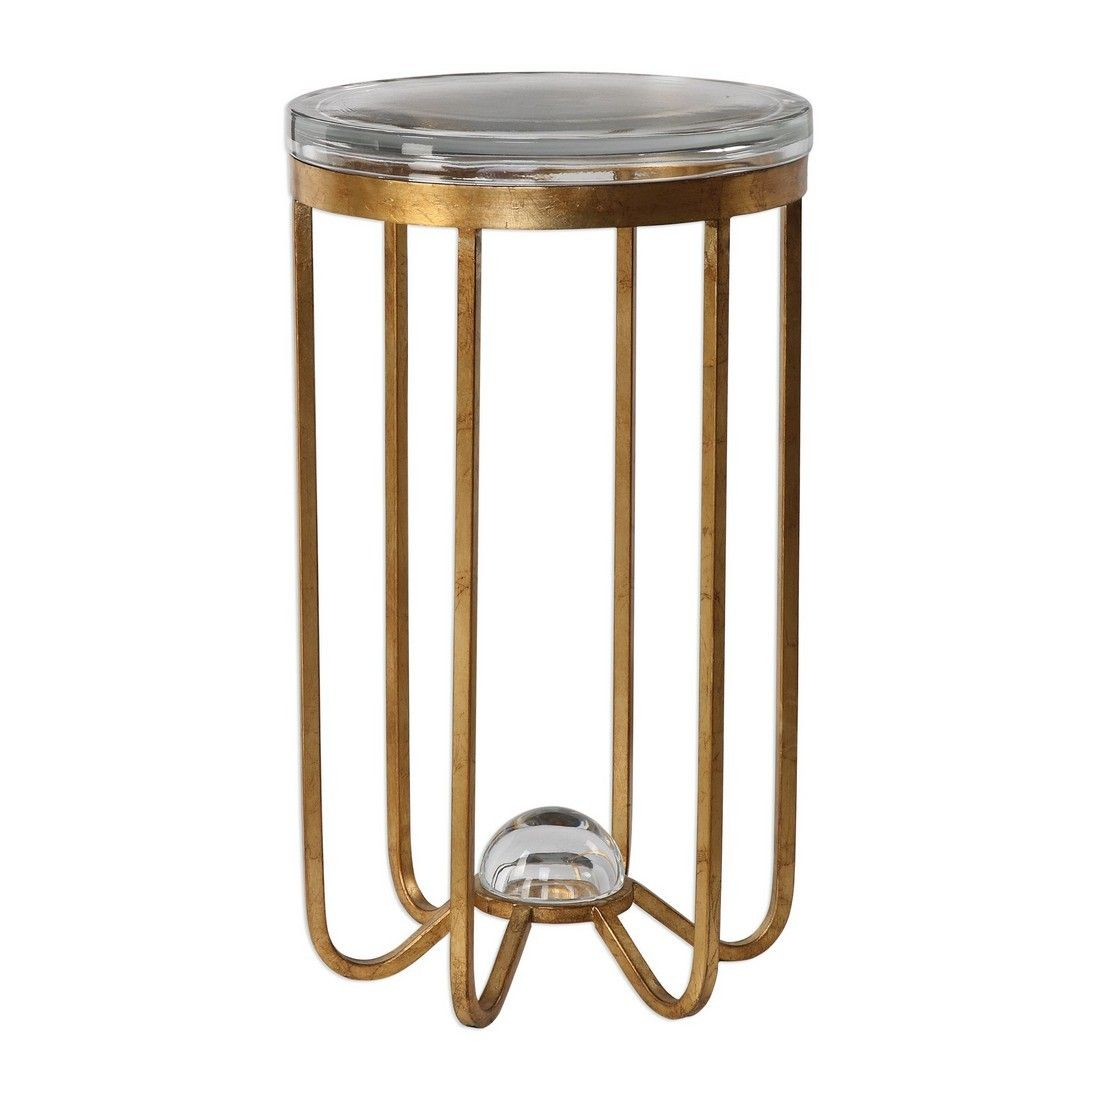 uttermost allura thick round glass accent table antique gold leaf clear crystal lamp target kitchen island gray trestle dining rimmed coffee drop unique small tables wine cupboard